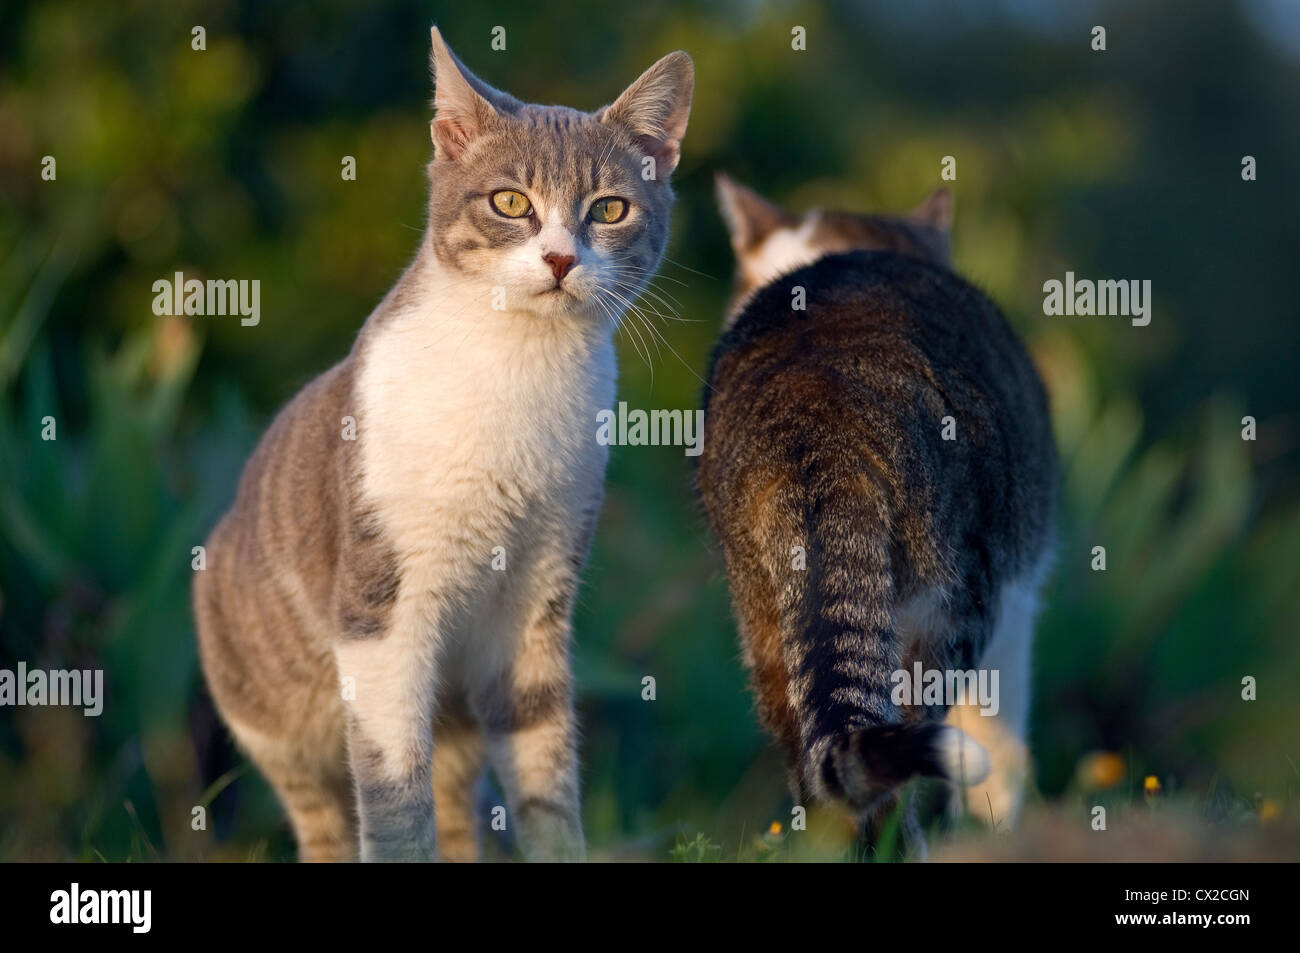 Two domestic cats in the garden Stock Photo